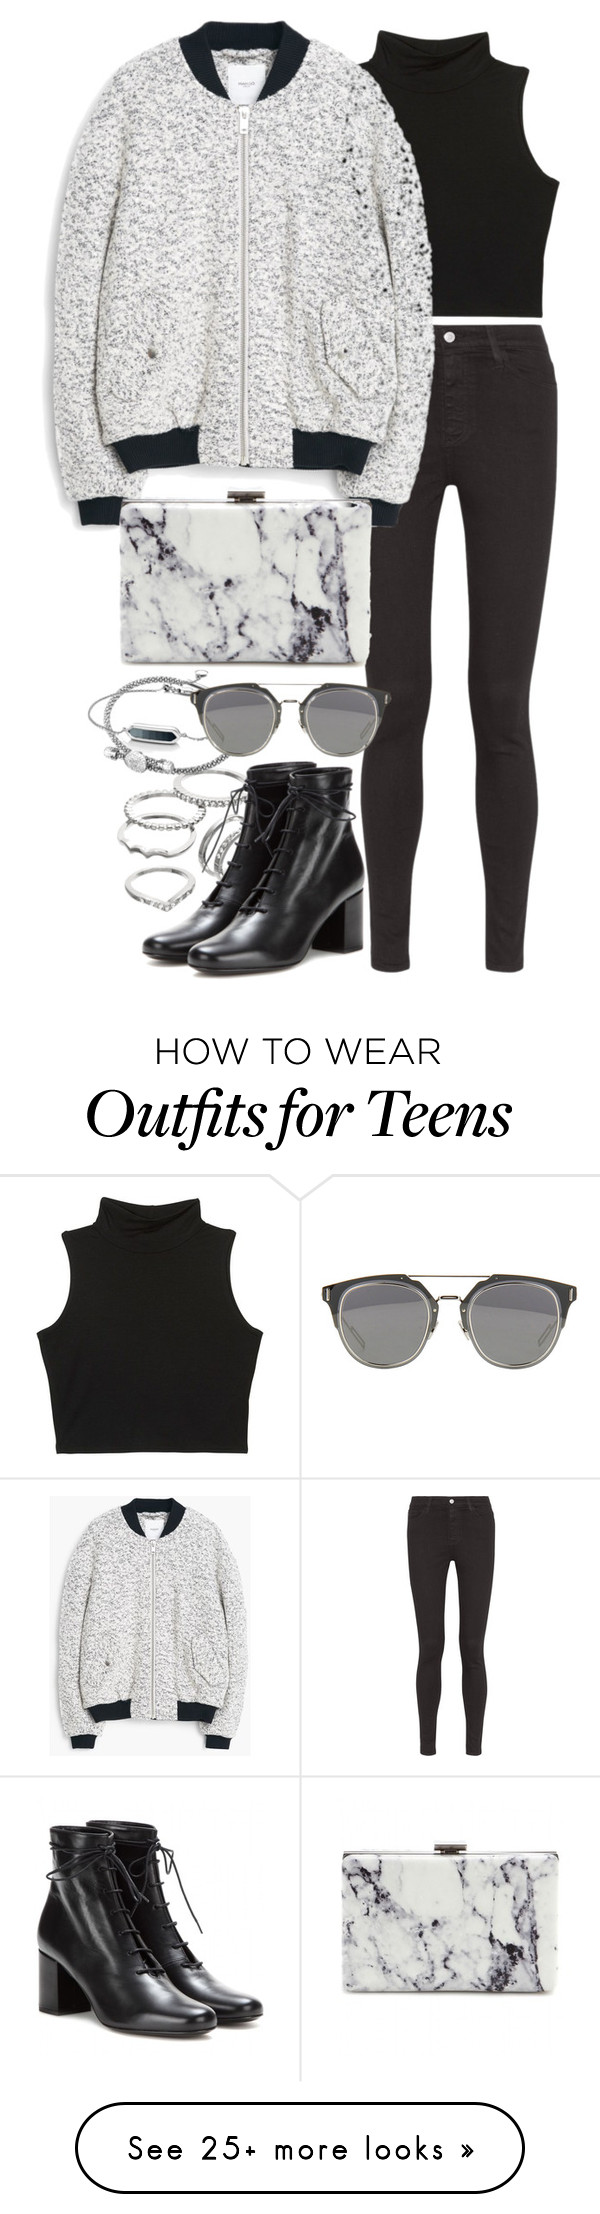 """""""Untitled #7782"""" by nikka-phillips on Polyvore featuring AG Adriano Goldschmied, Apt. 9, Links of London, Monica Vinader, MANGO, Yves Saint Laurent and Balenciaga"""